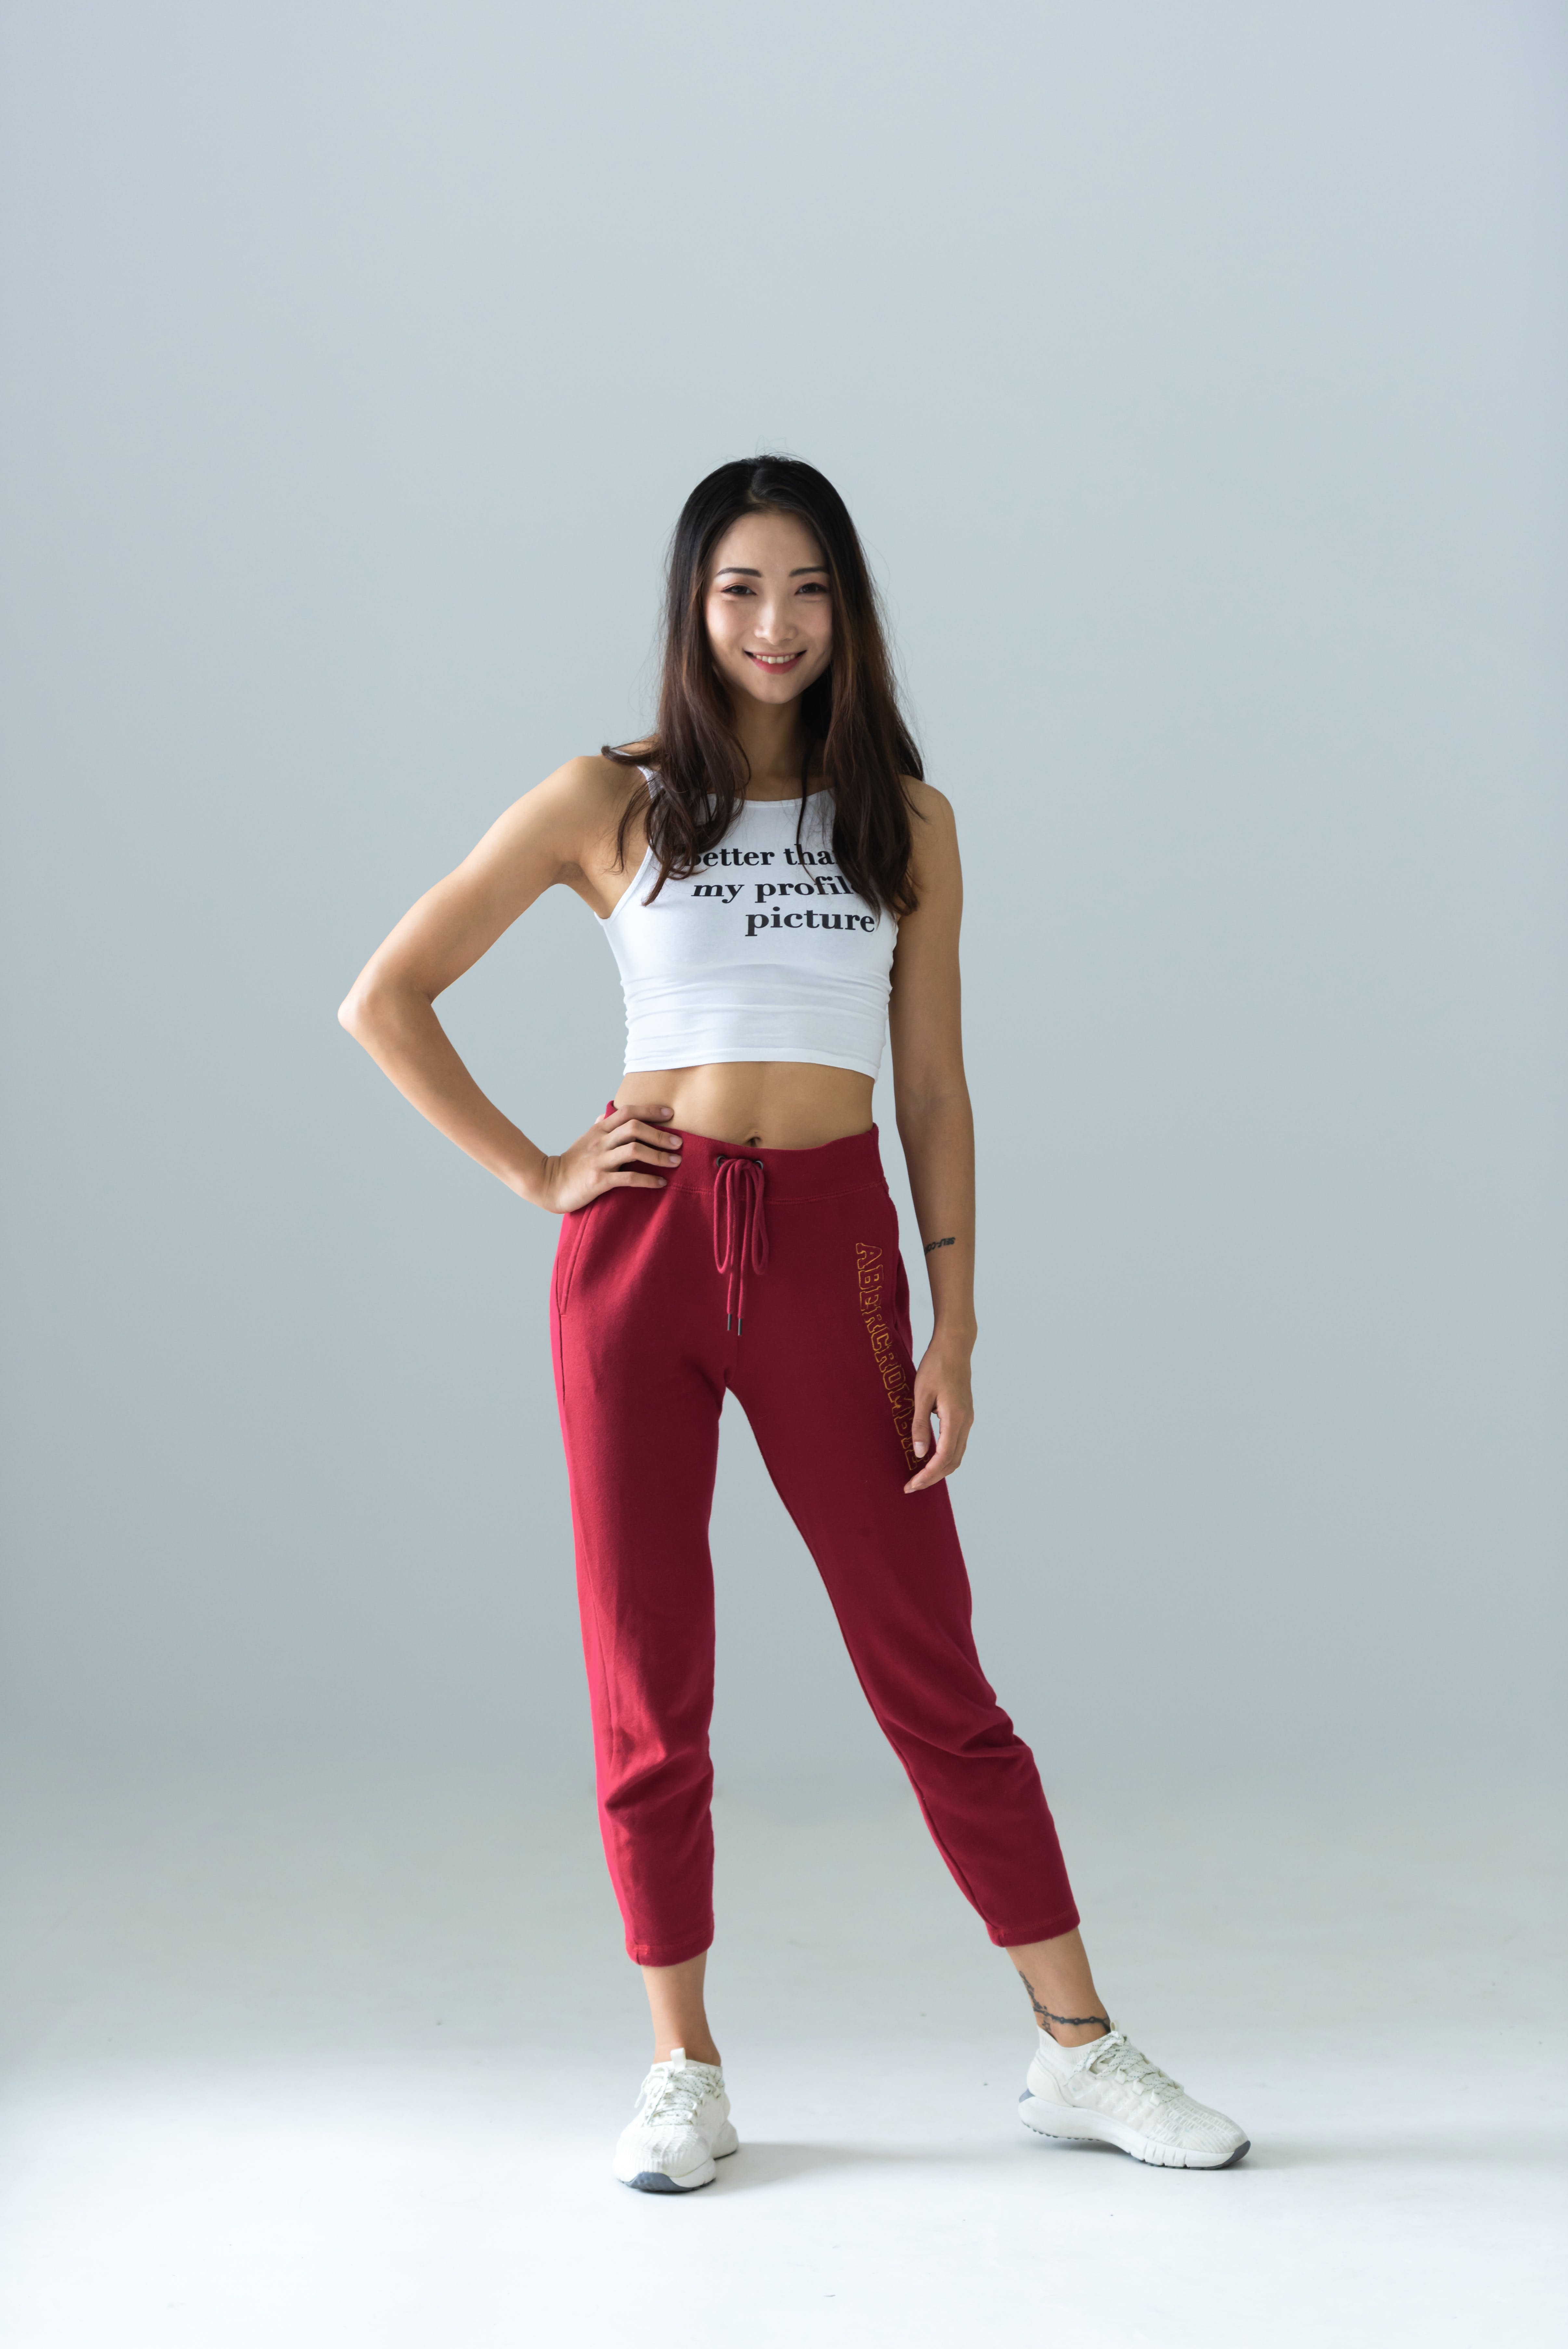 Photo of Woman Wearing Red Pants